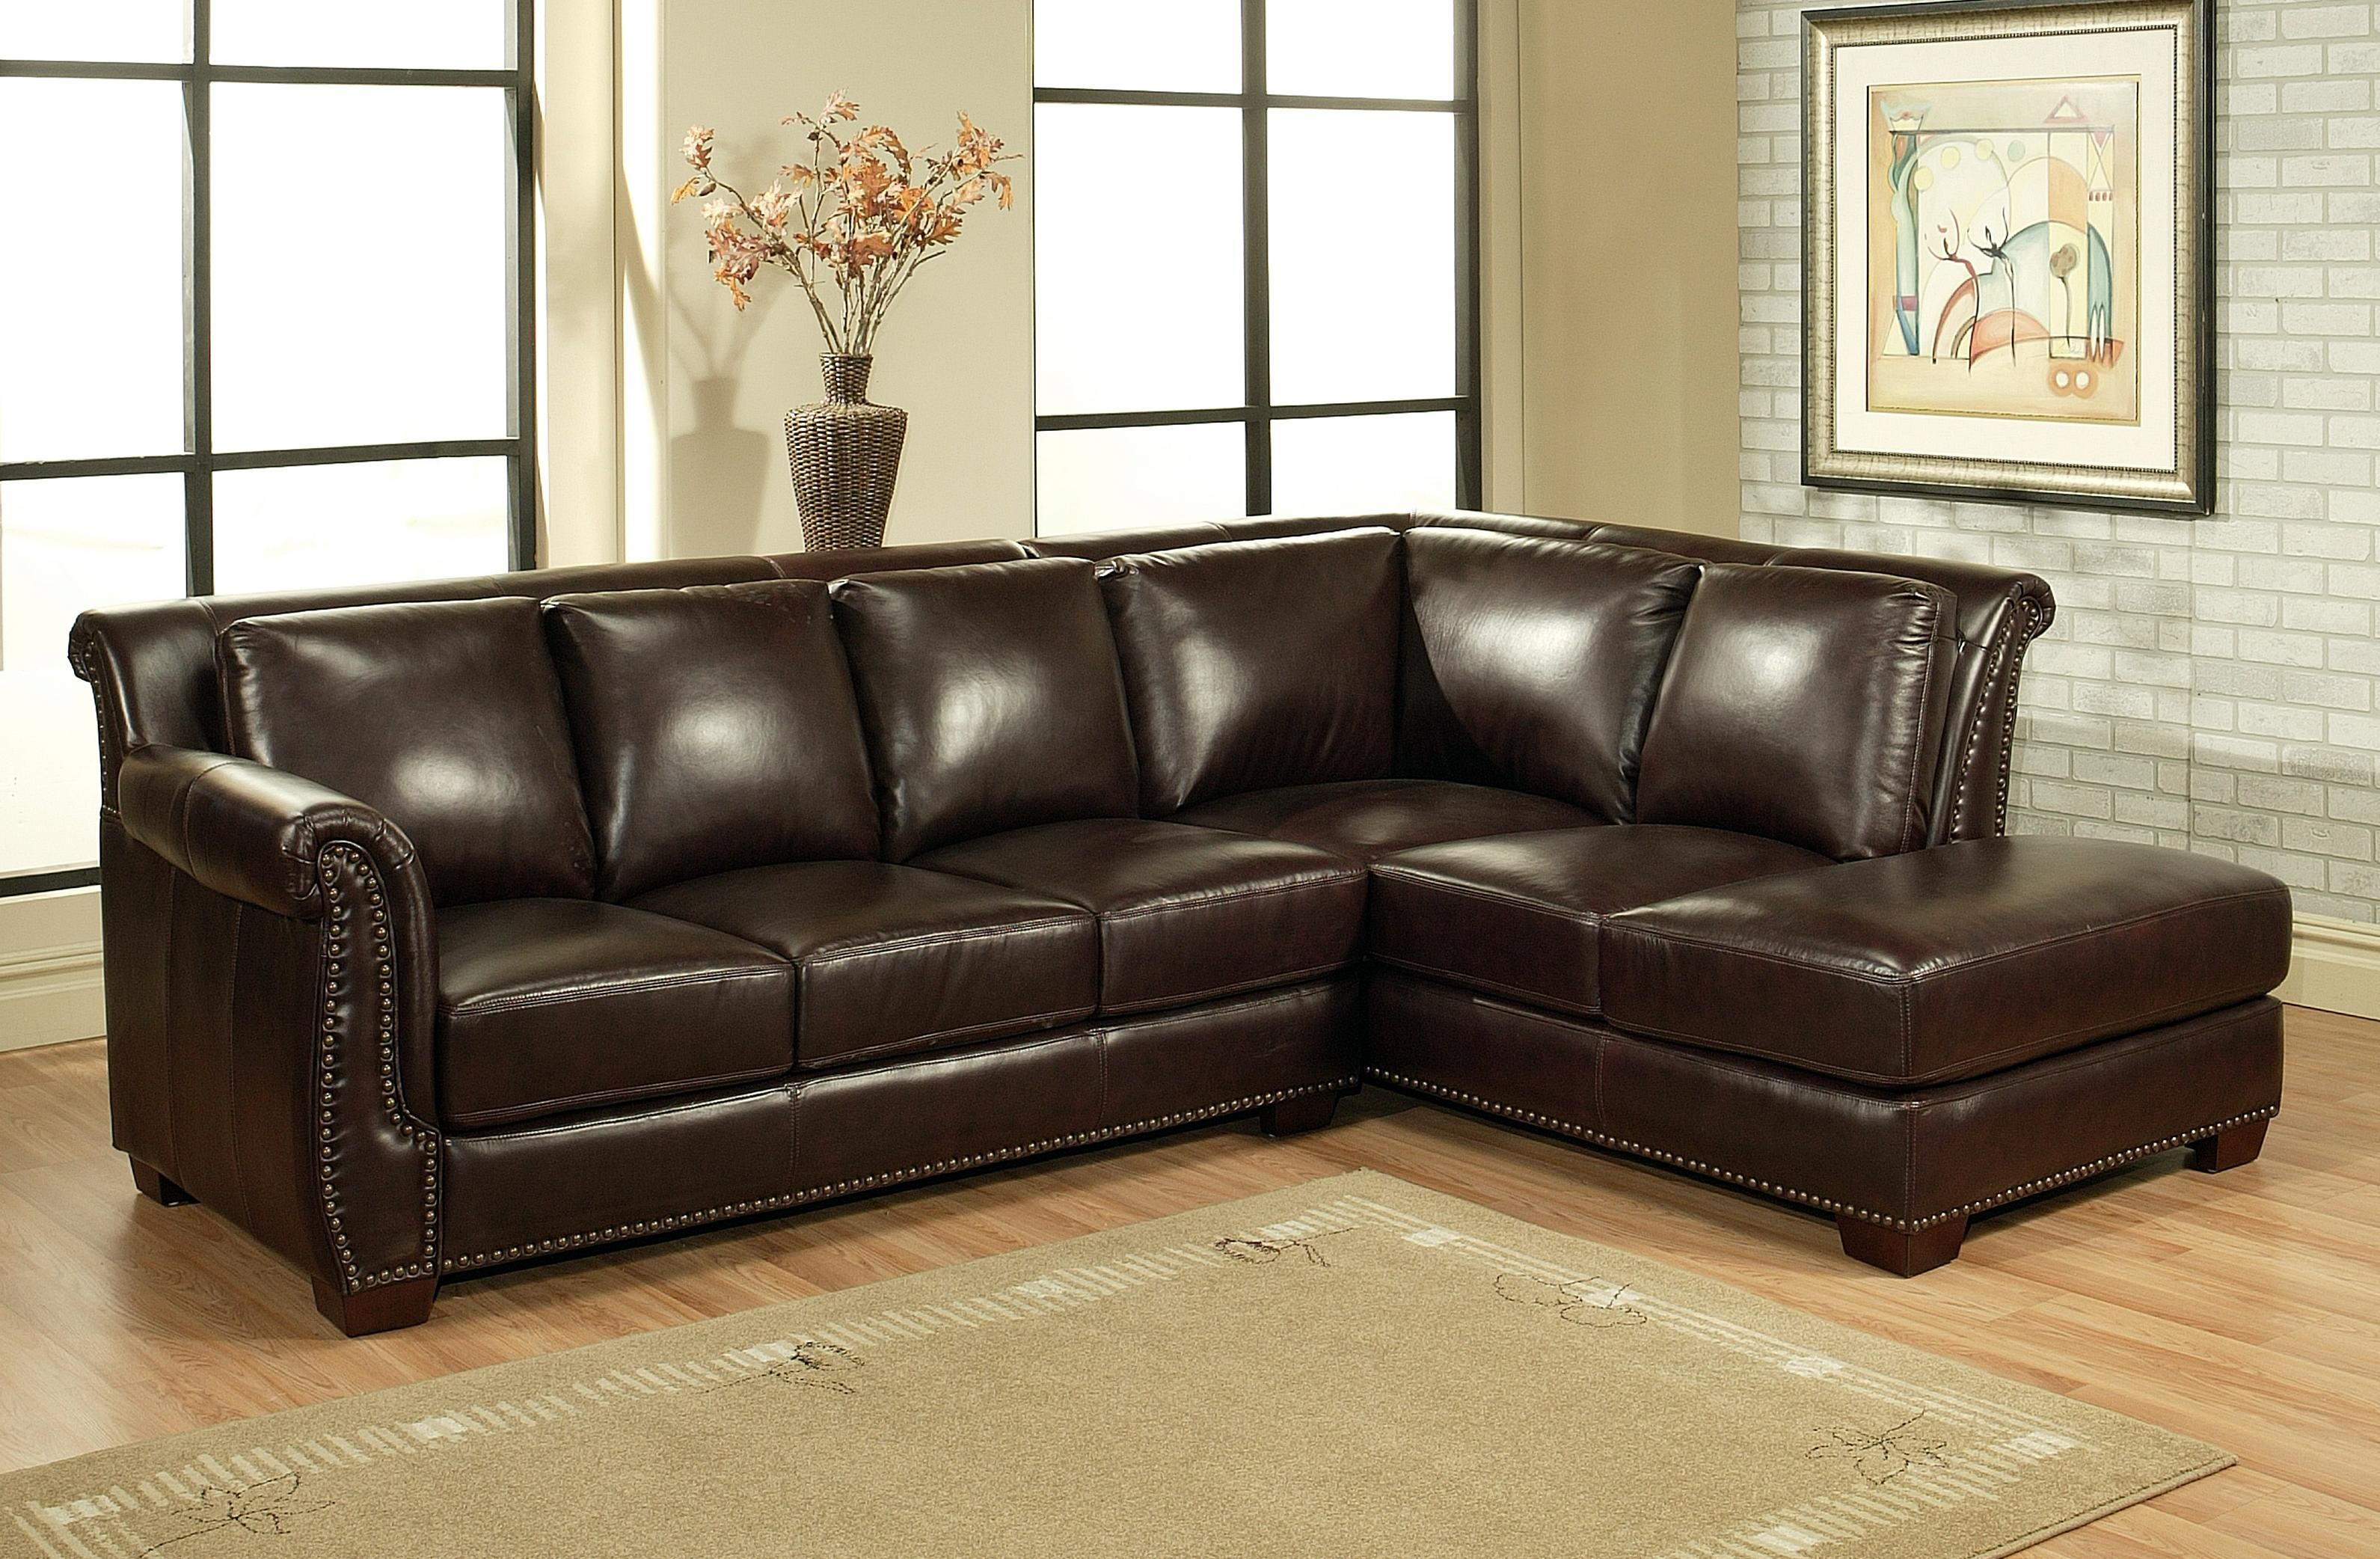 Bring Classic Inspiration And Timeless Elegance To Your Home With This  Beautiful Leather Sectional Sofa, Perfect As A Finishing Touch To Your Den  Or Living ...